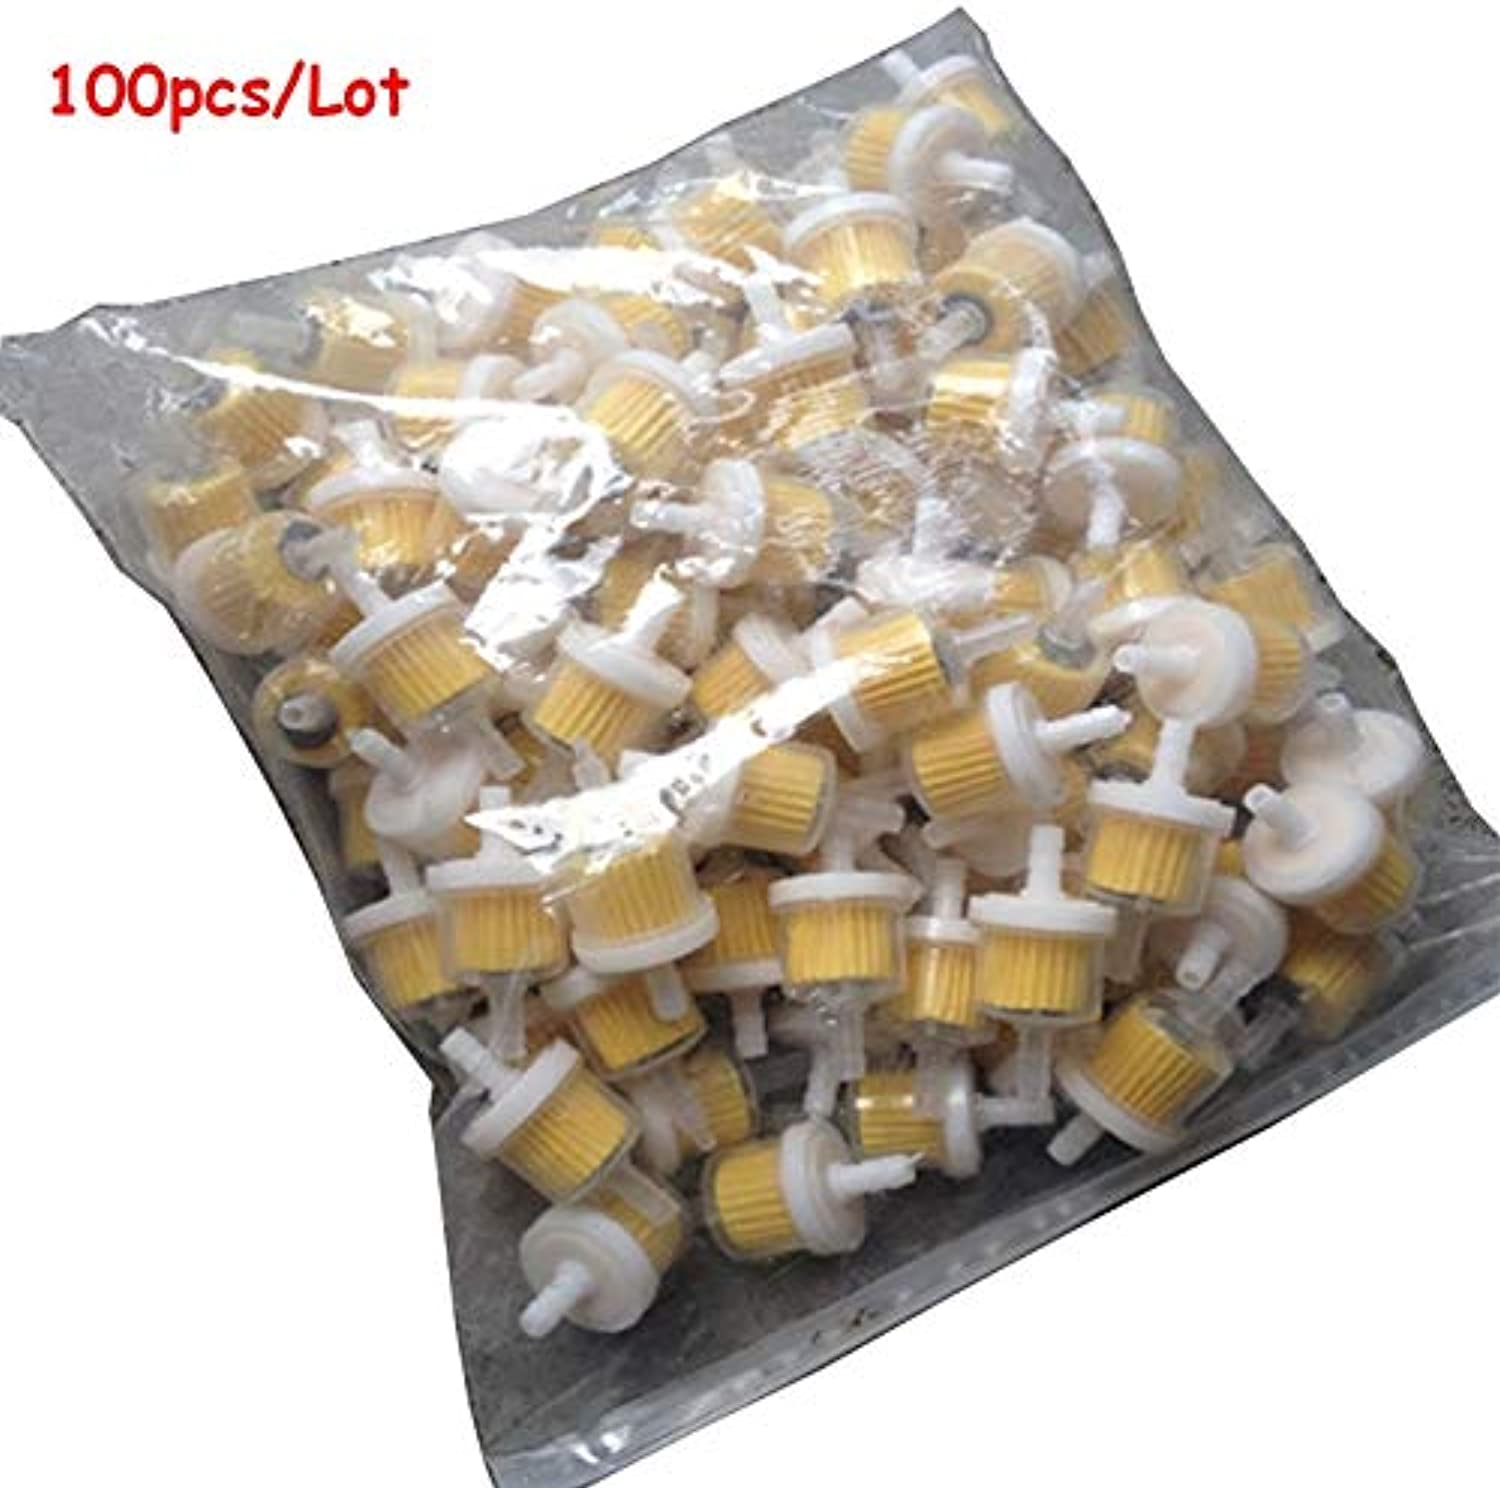 fincos 100pcs lot universal motorcycle gas fuel filters engine fram Inline Fuel Filter